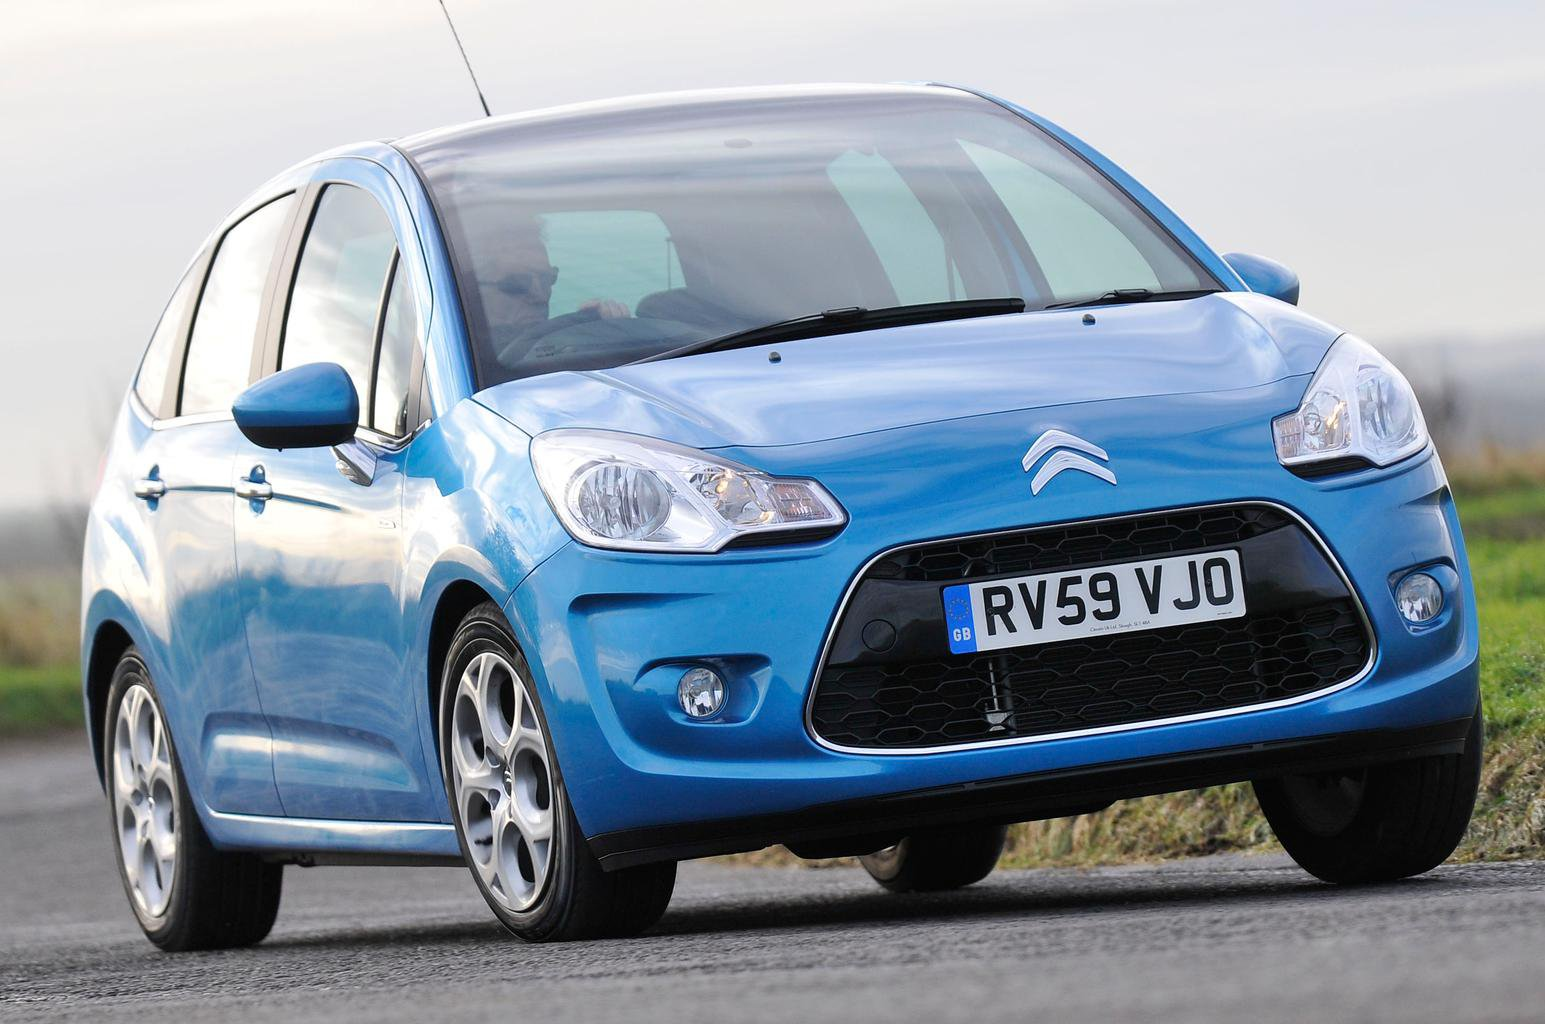 Used test: Ford Fiesta vs Volkswagen Polo vs Citroen C3